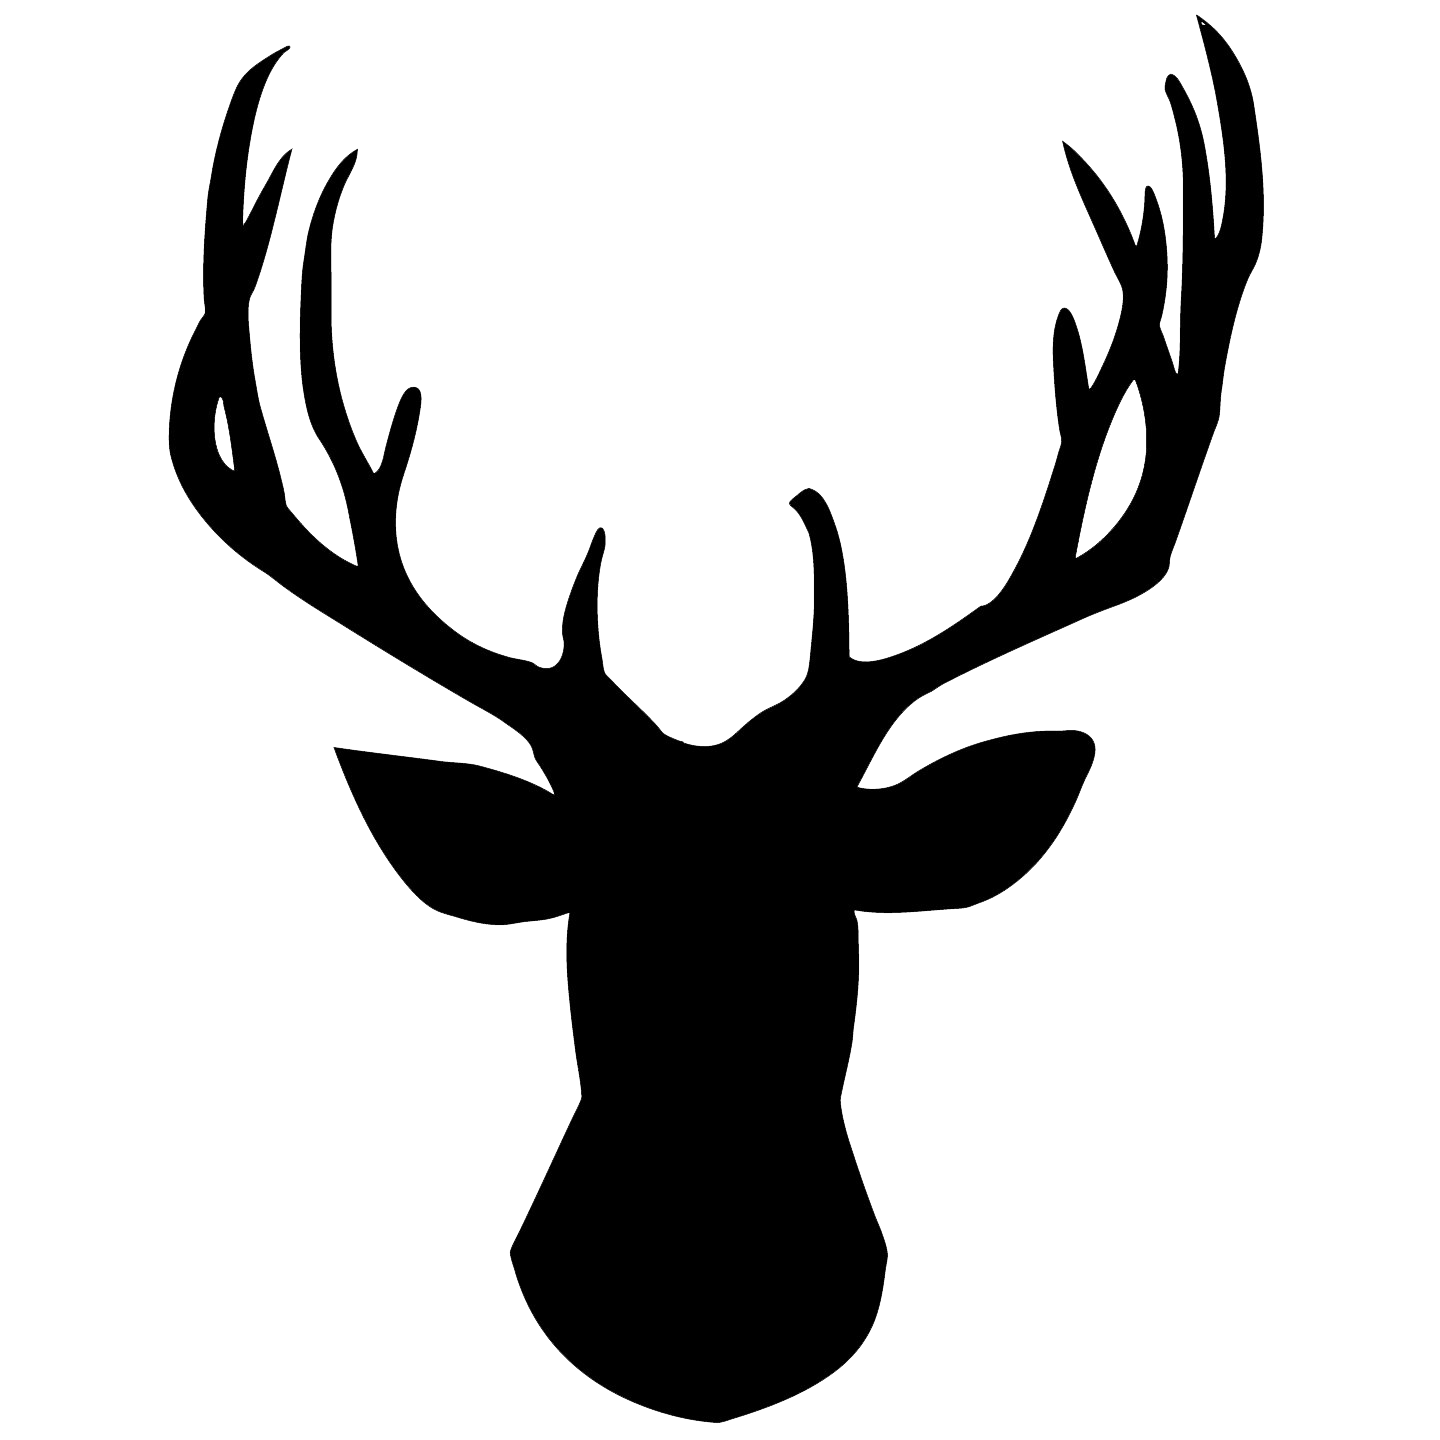 Deer head silhouette png. Images transparent free download